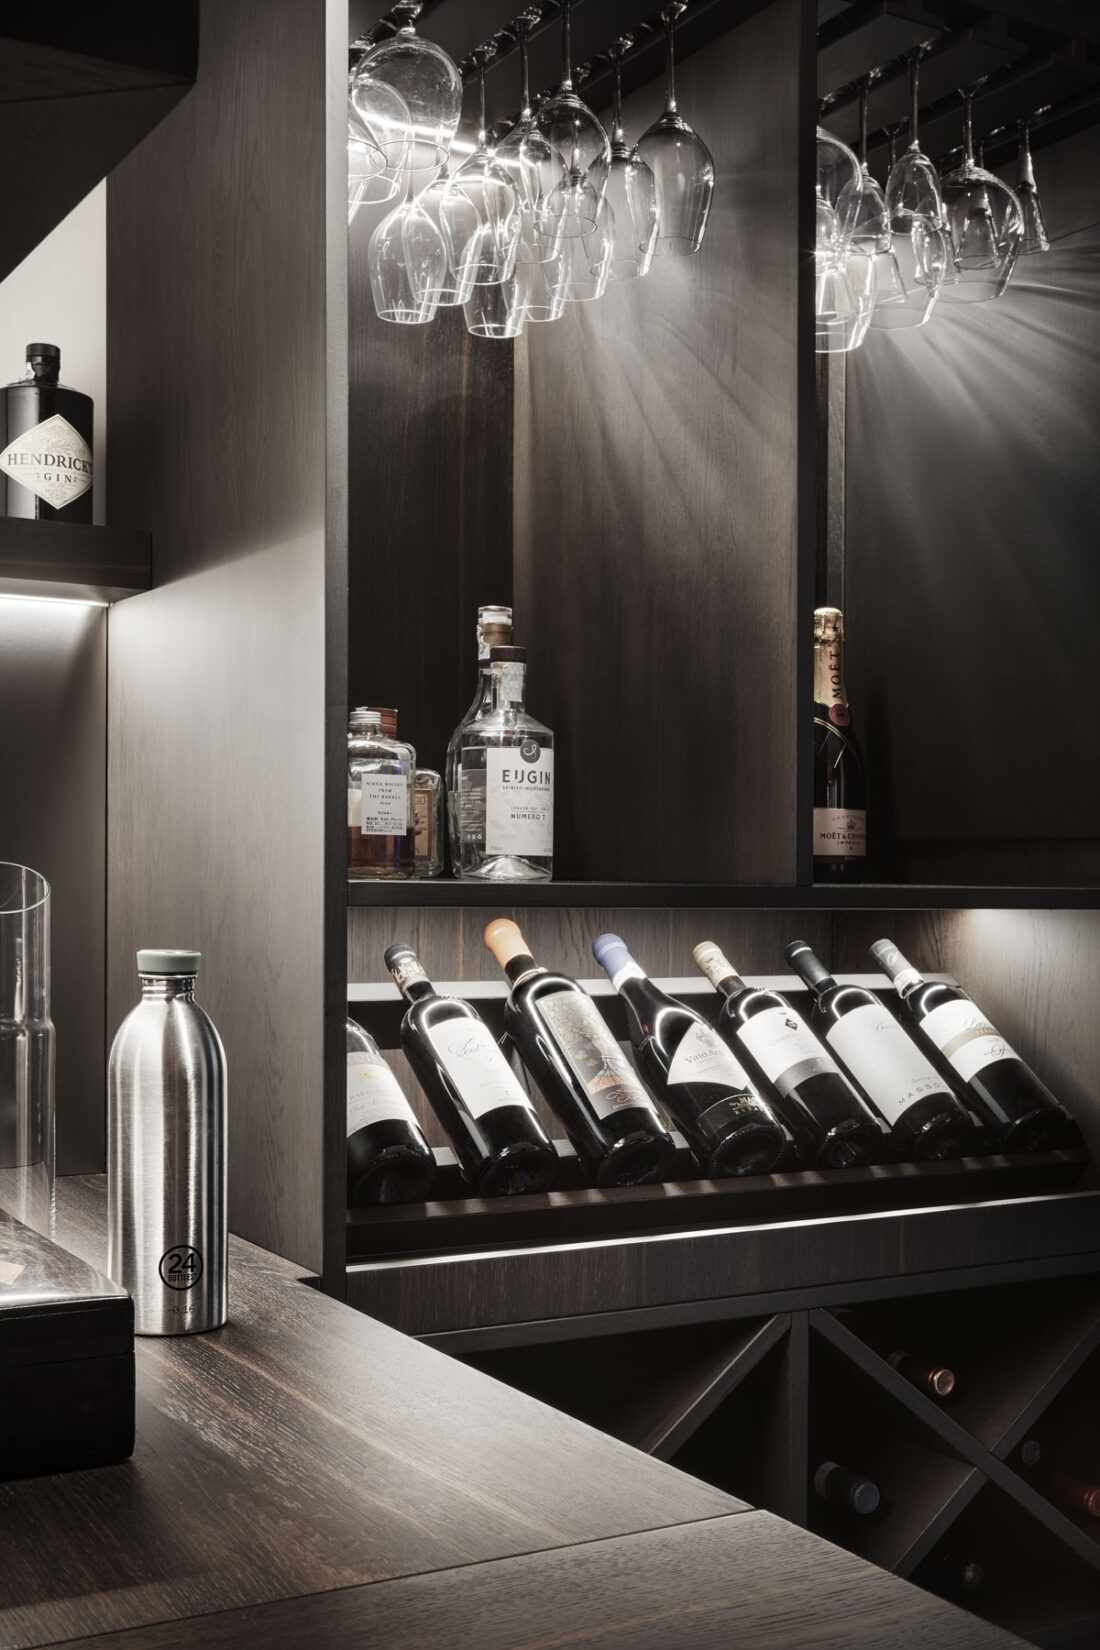 private wooden wine cellar with luxury wines, spirits and glasses